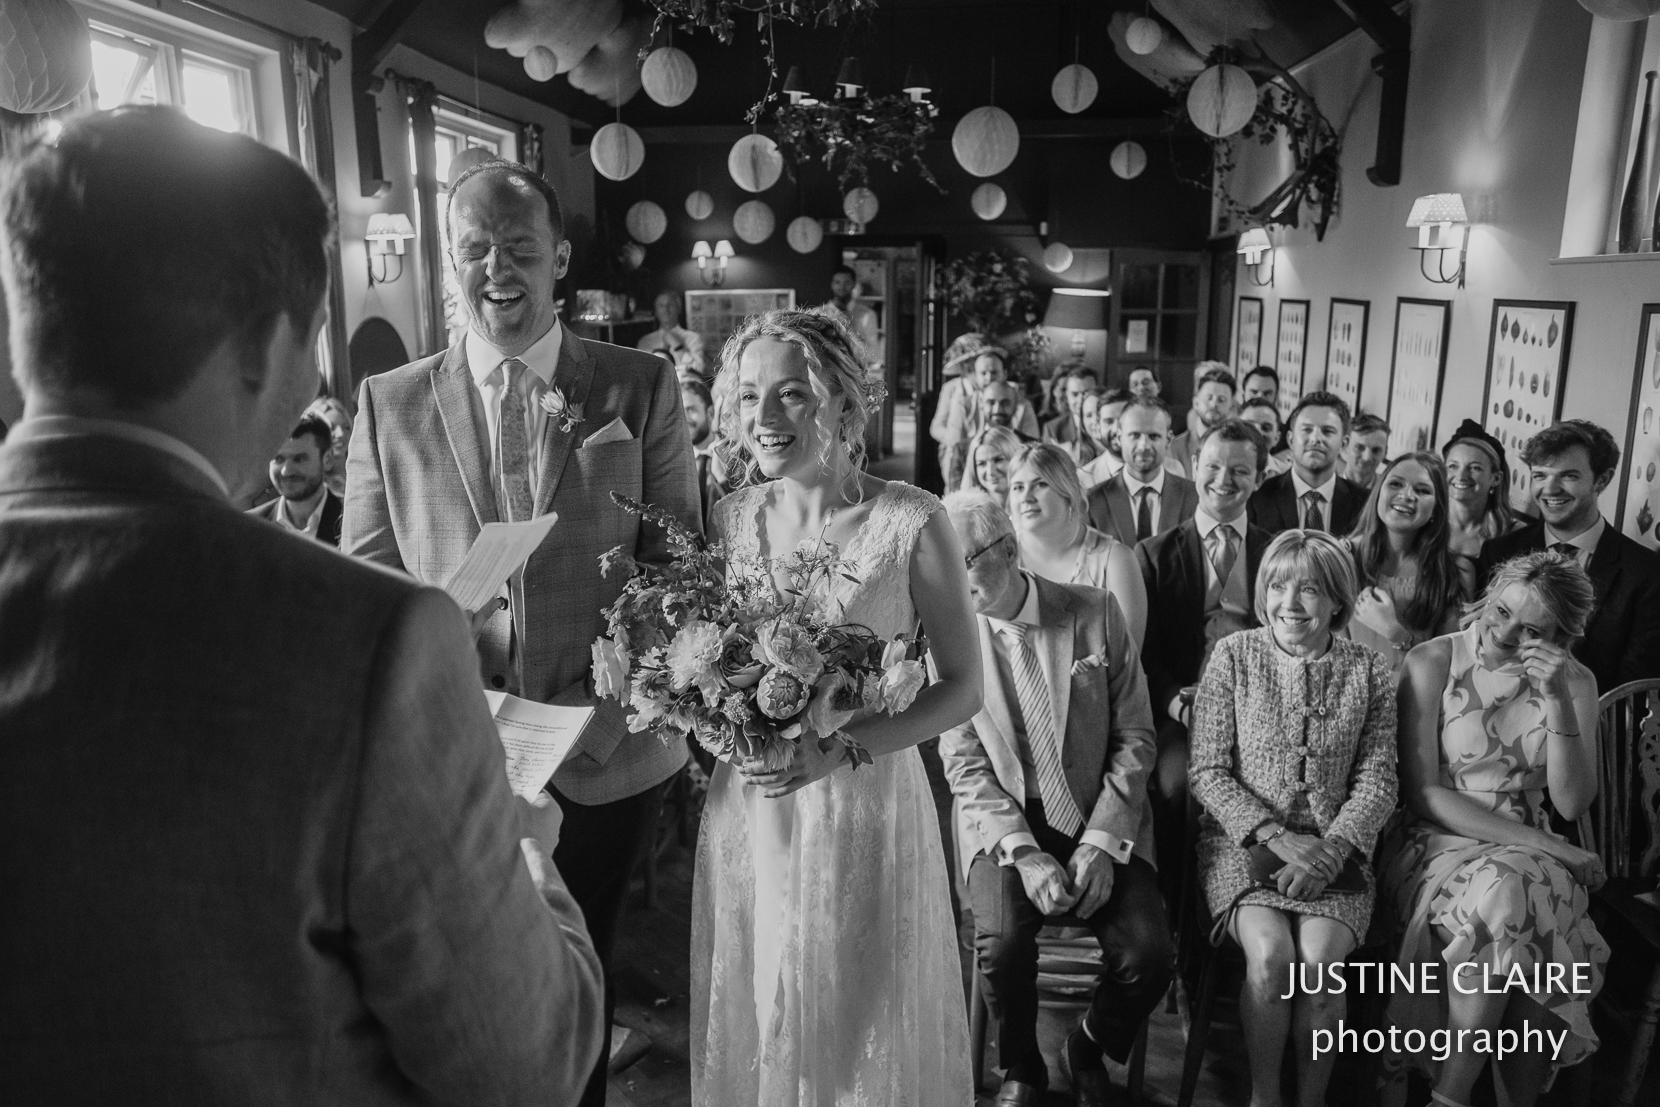 Noahs Ark Inn Wedding Lurgashall Turners Hill and partridge Green Guildfors Midhurst wedding photographers-2-2.jpg